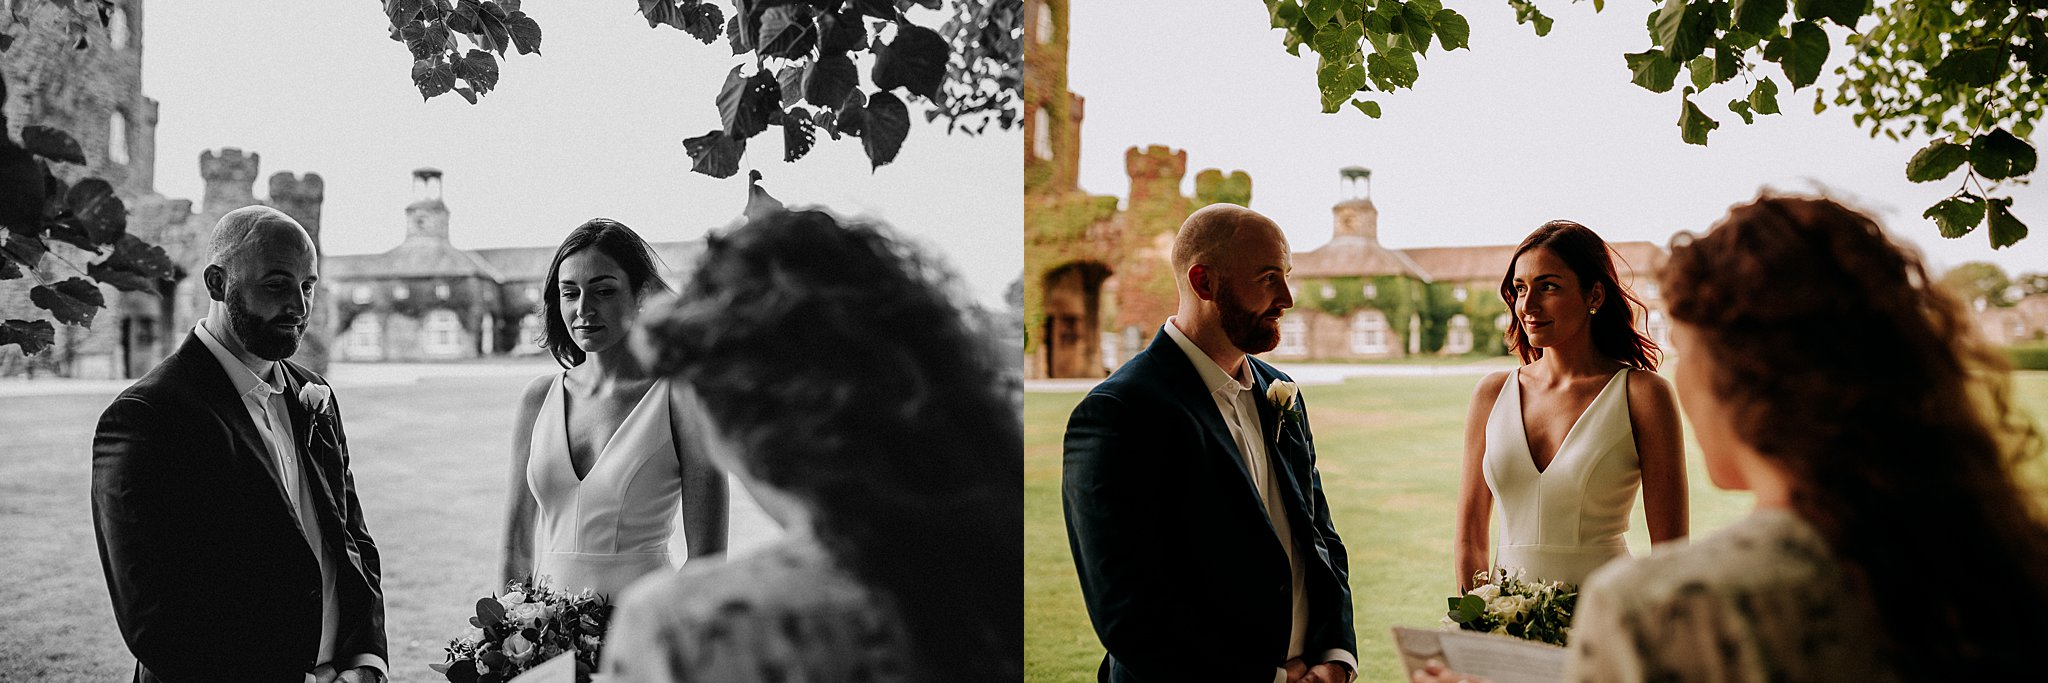 Destination Wedding Photographer England